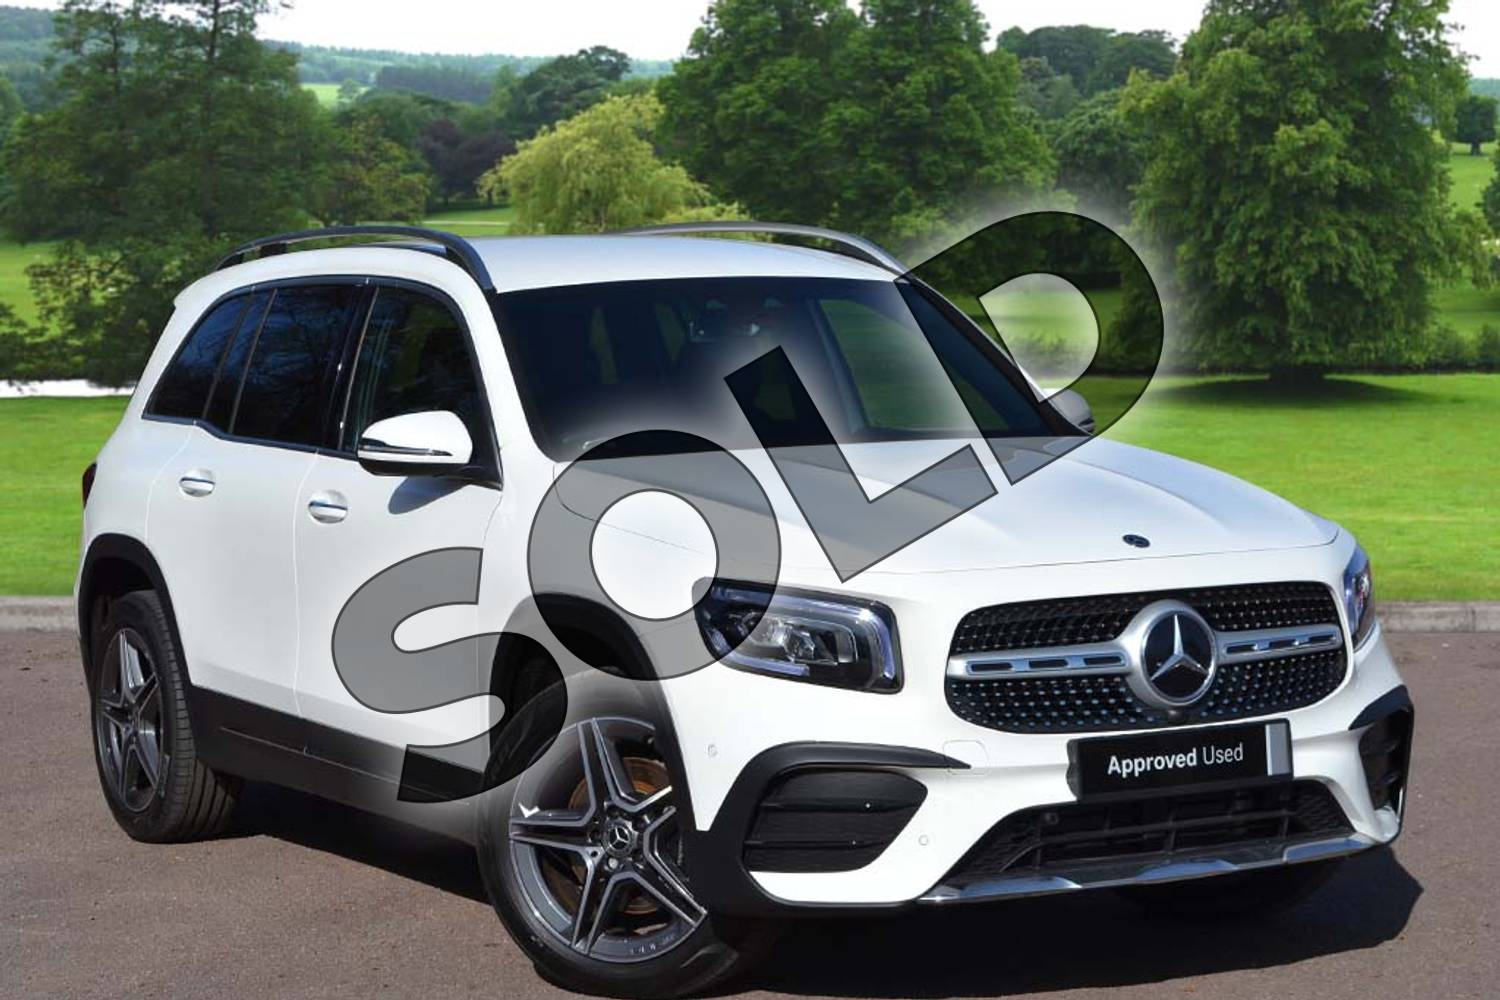 2021 Mercedes-Benz GLB Diesel Estate GLB 200d 4Matic AMG Line Premium 5dr 8G-Tronic in Polar White at Mercedes-Benz of Grimsby